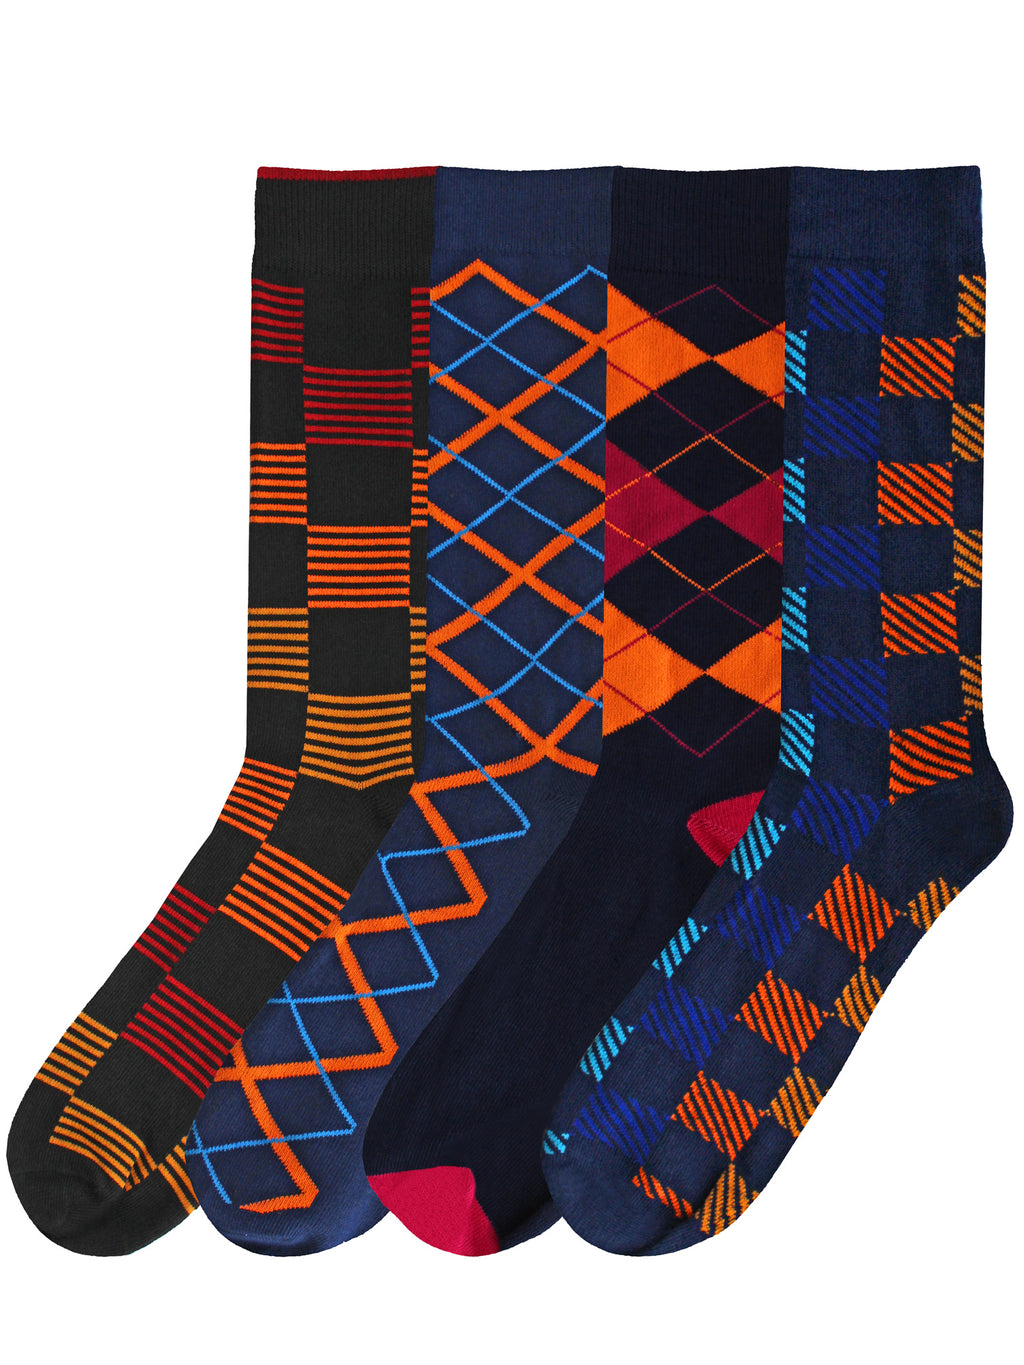 Sock Game Mens Argyle & Checker 4-Pack Dress Socks